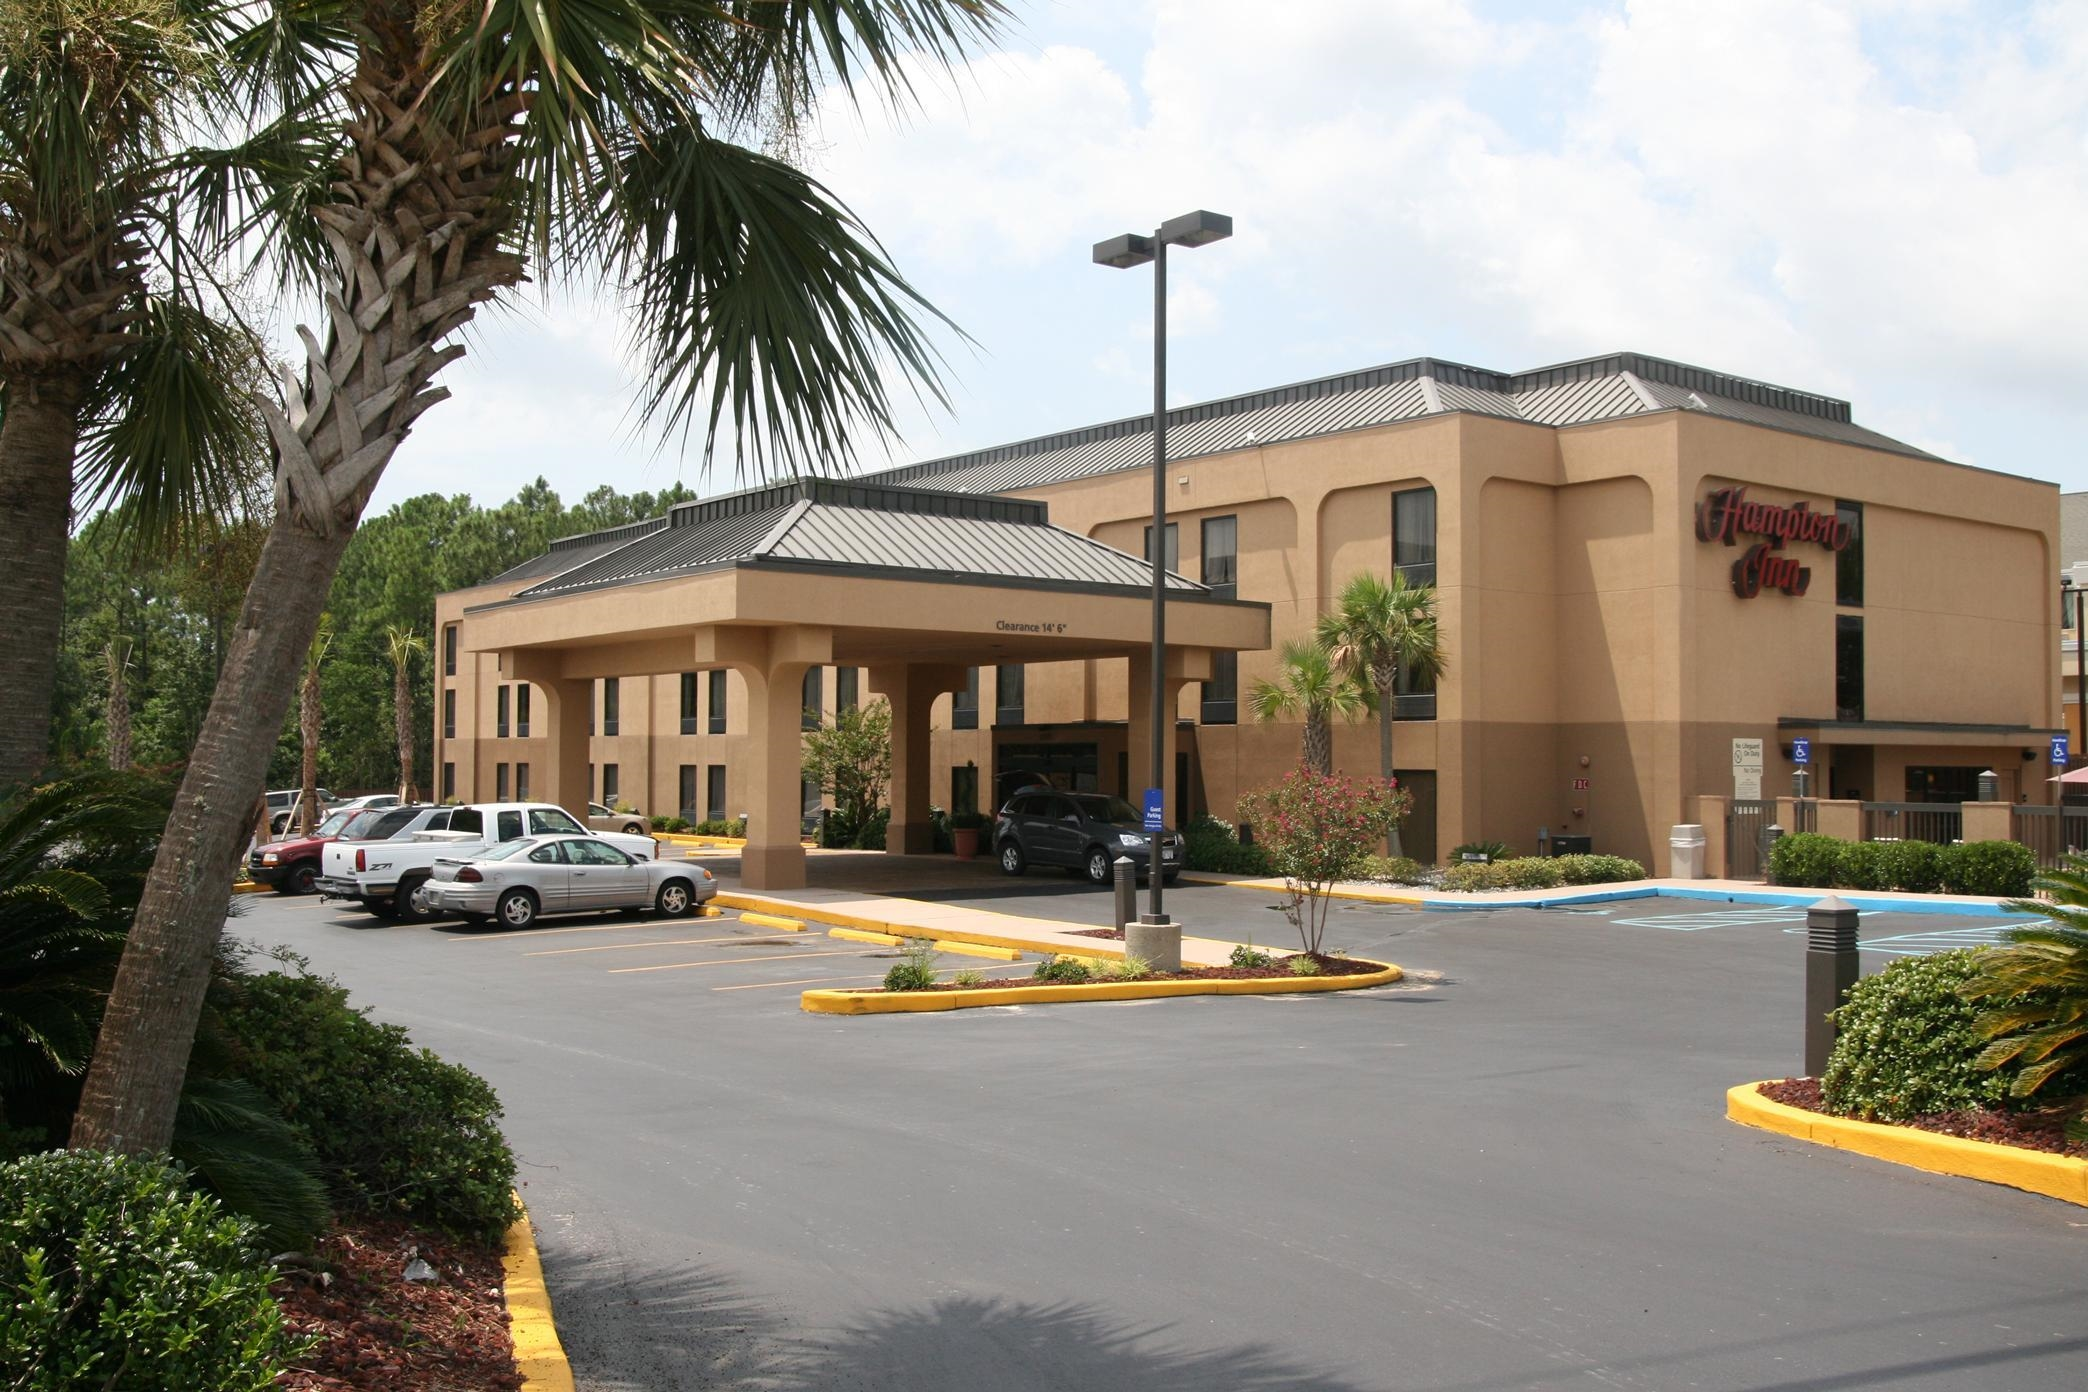 Hampton Inn Biloxi/Ocean Springs image 0